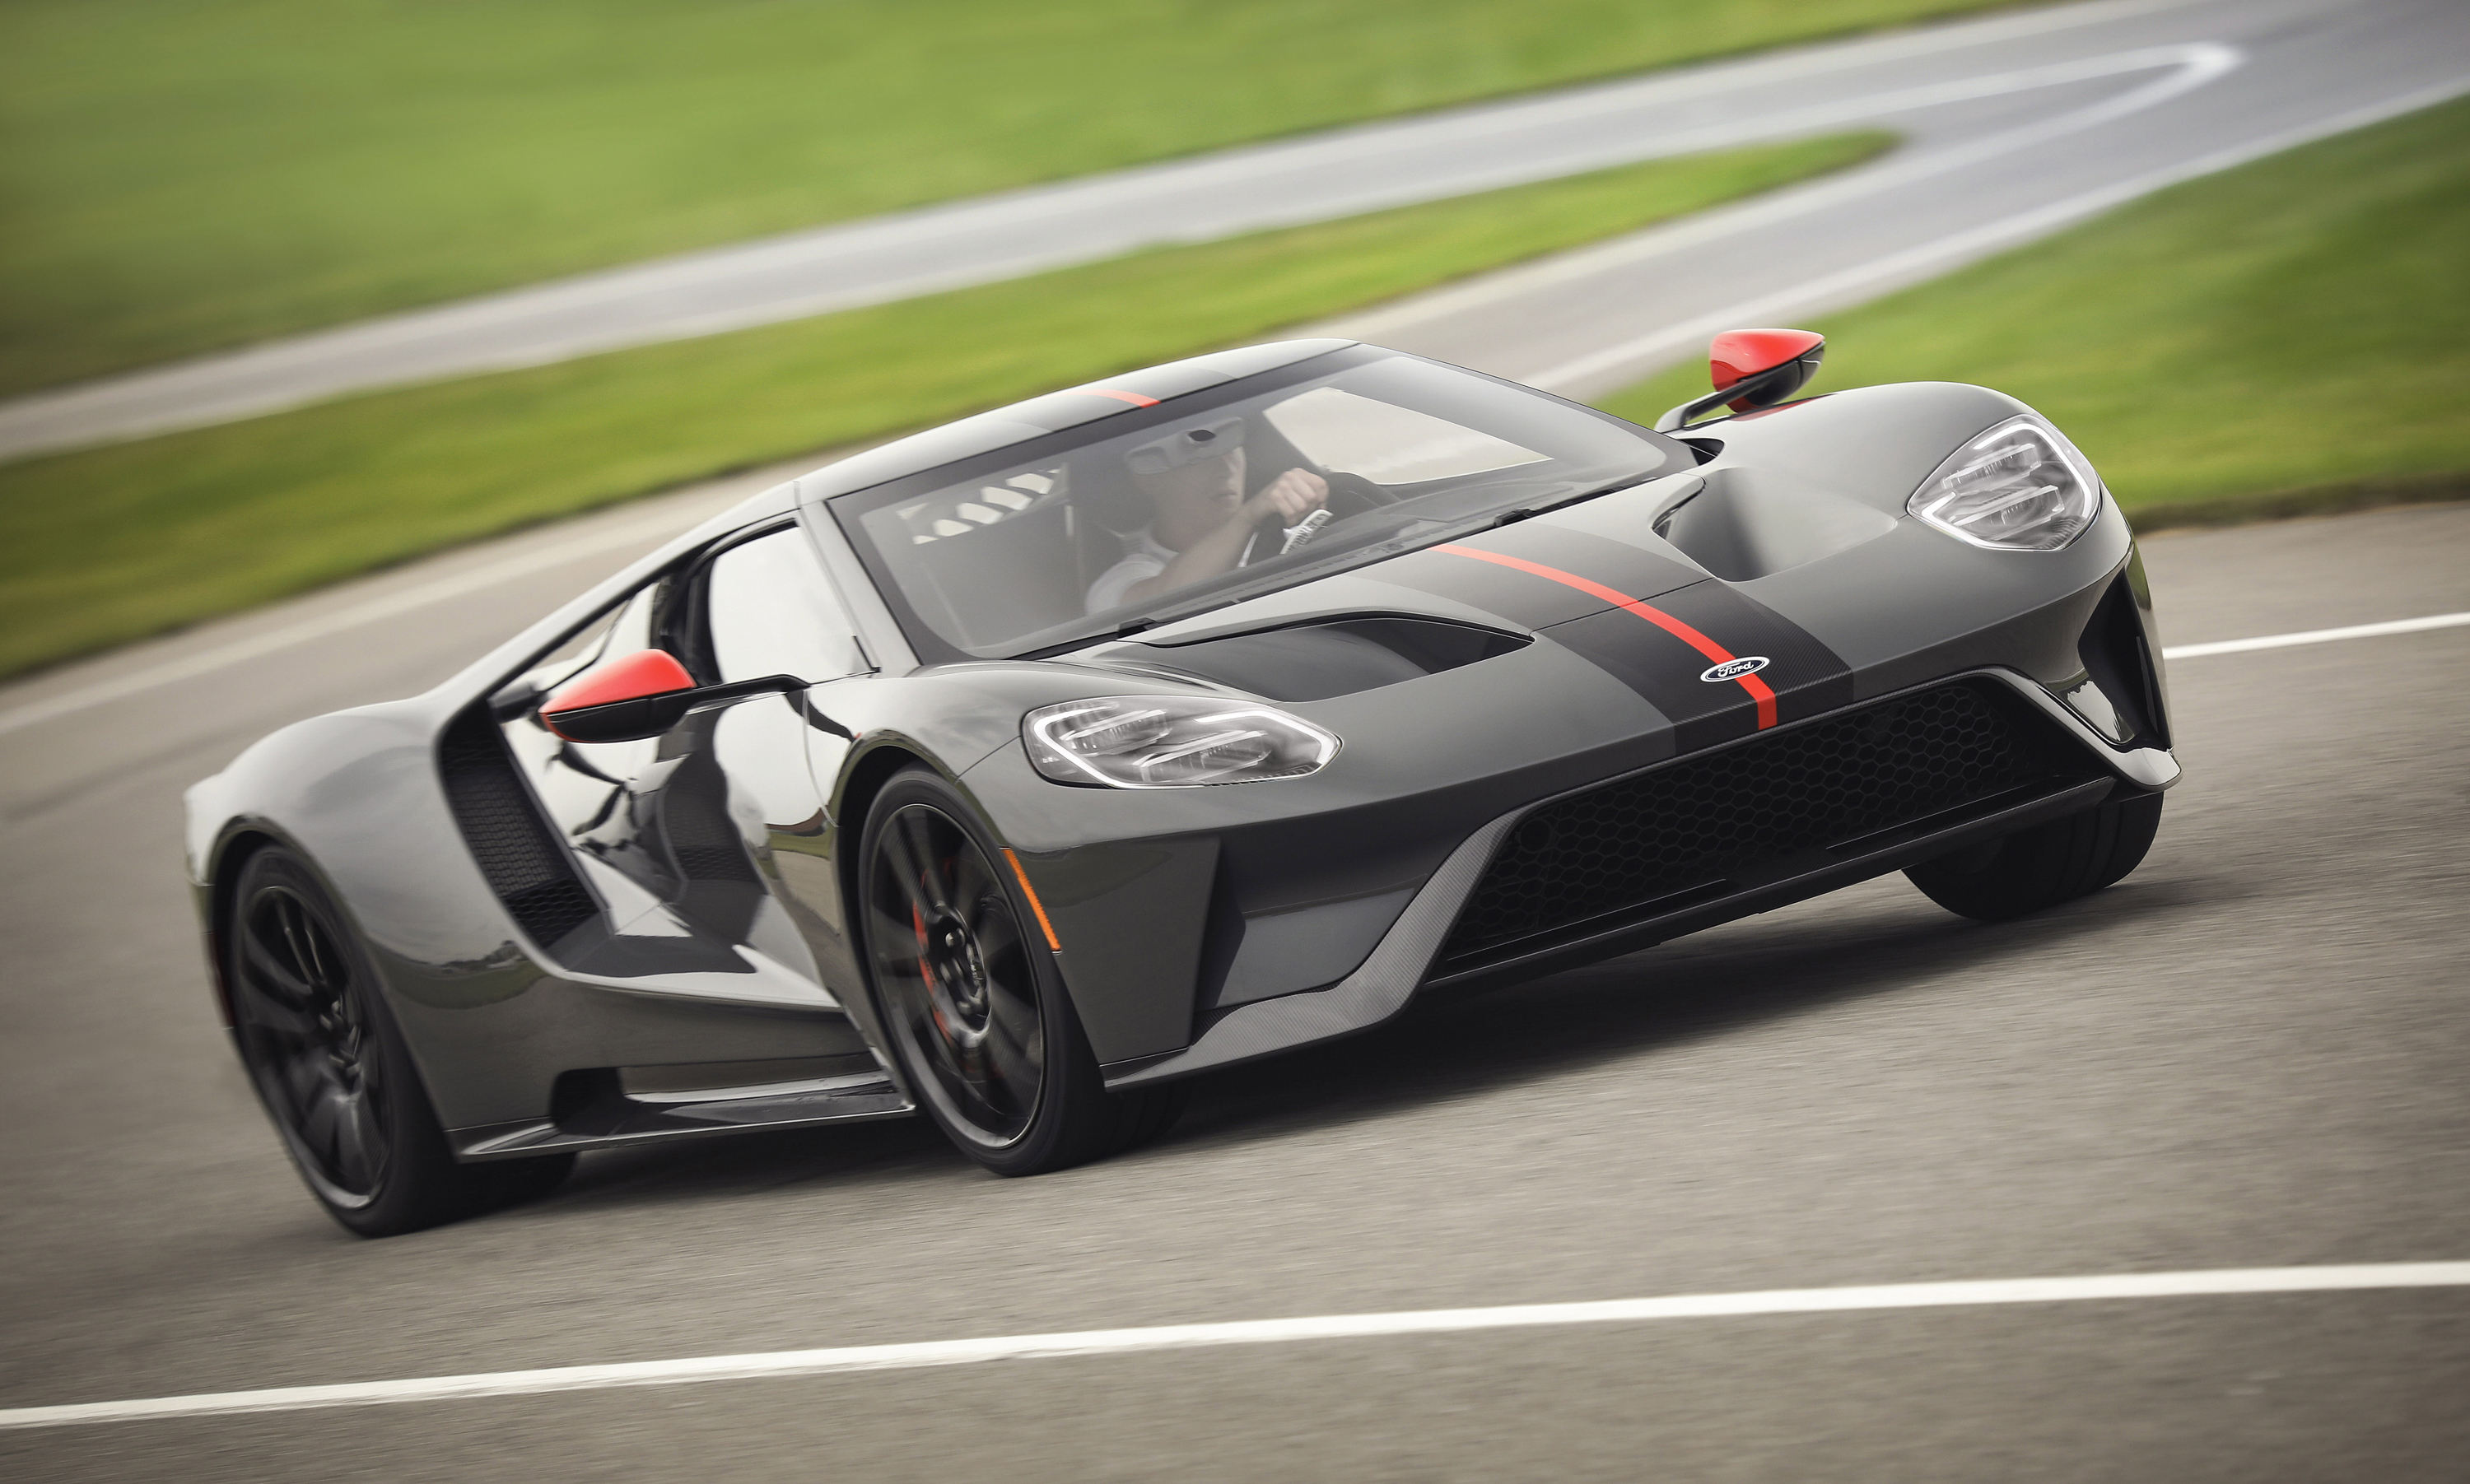 Ford GT Carbon Series Leadfoot Curving